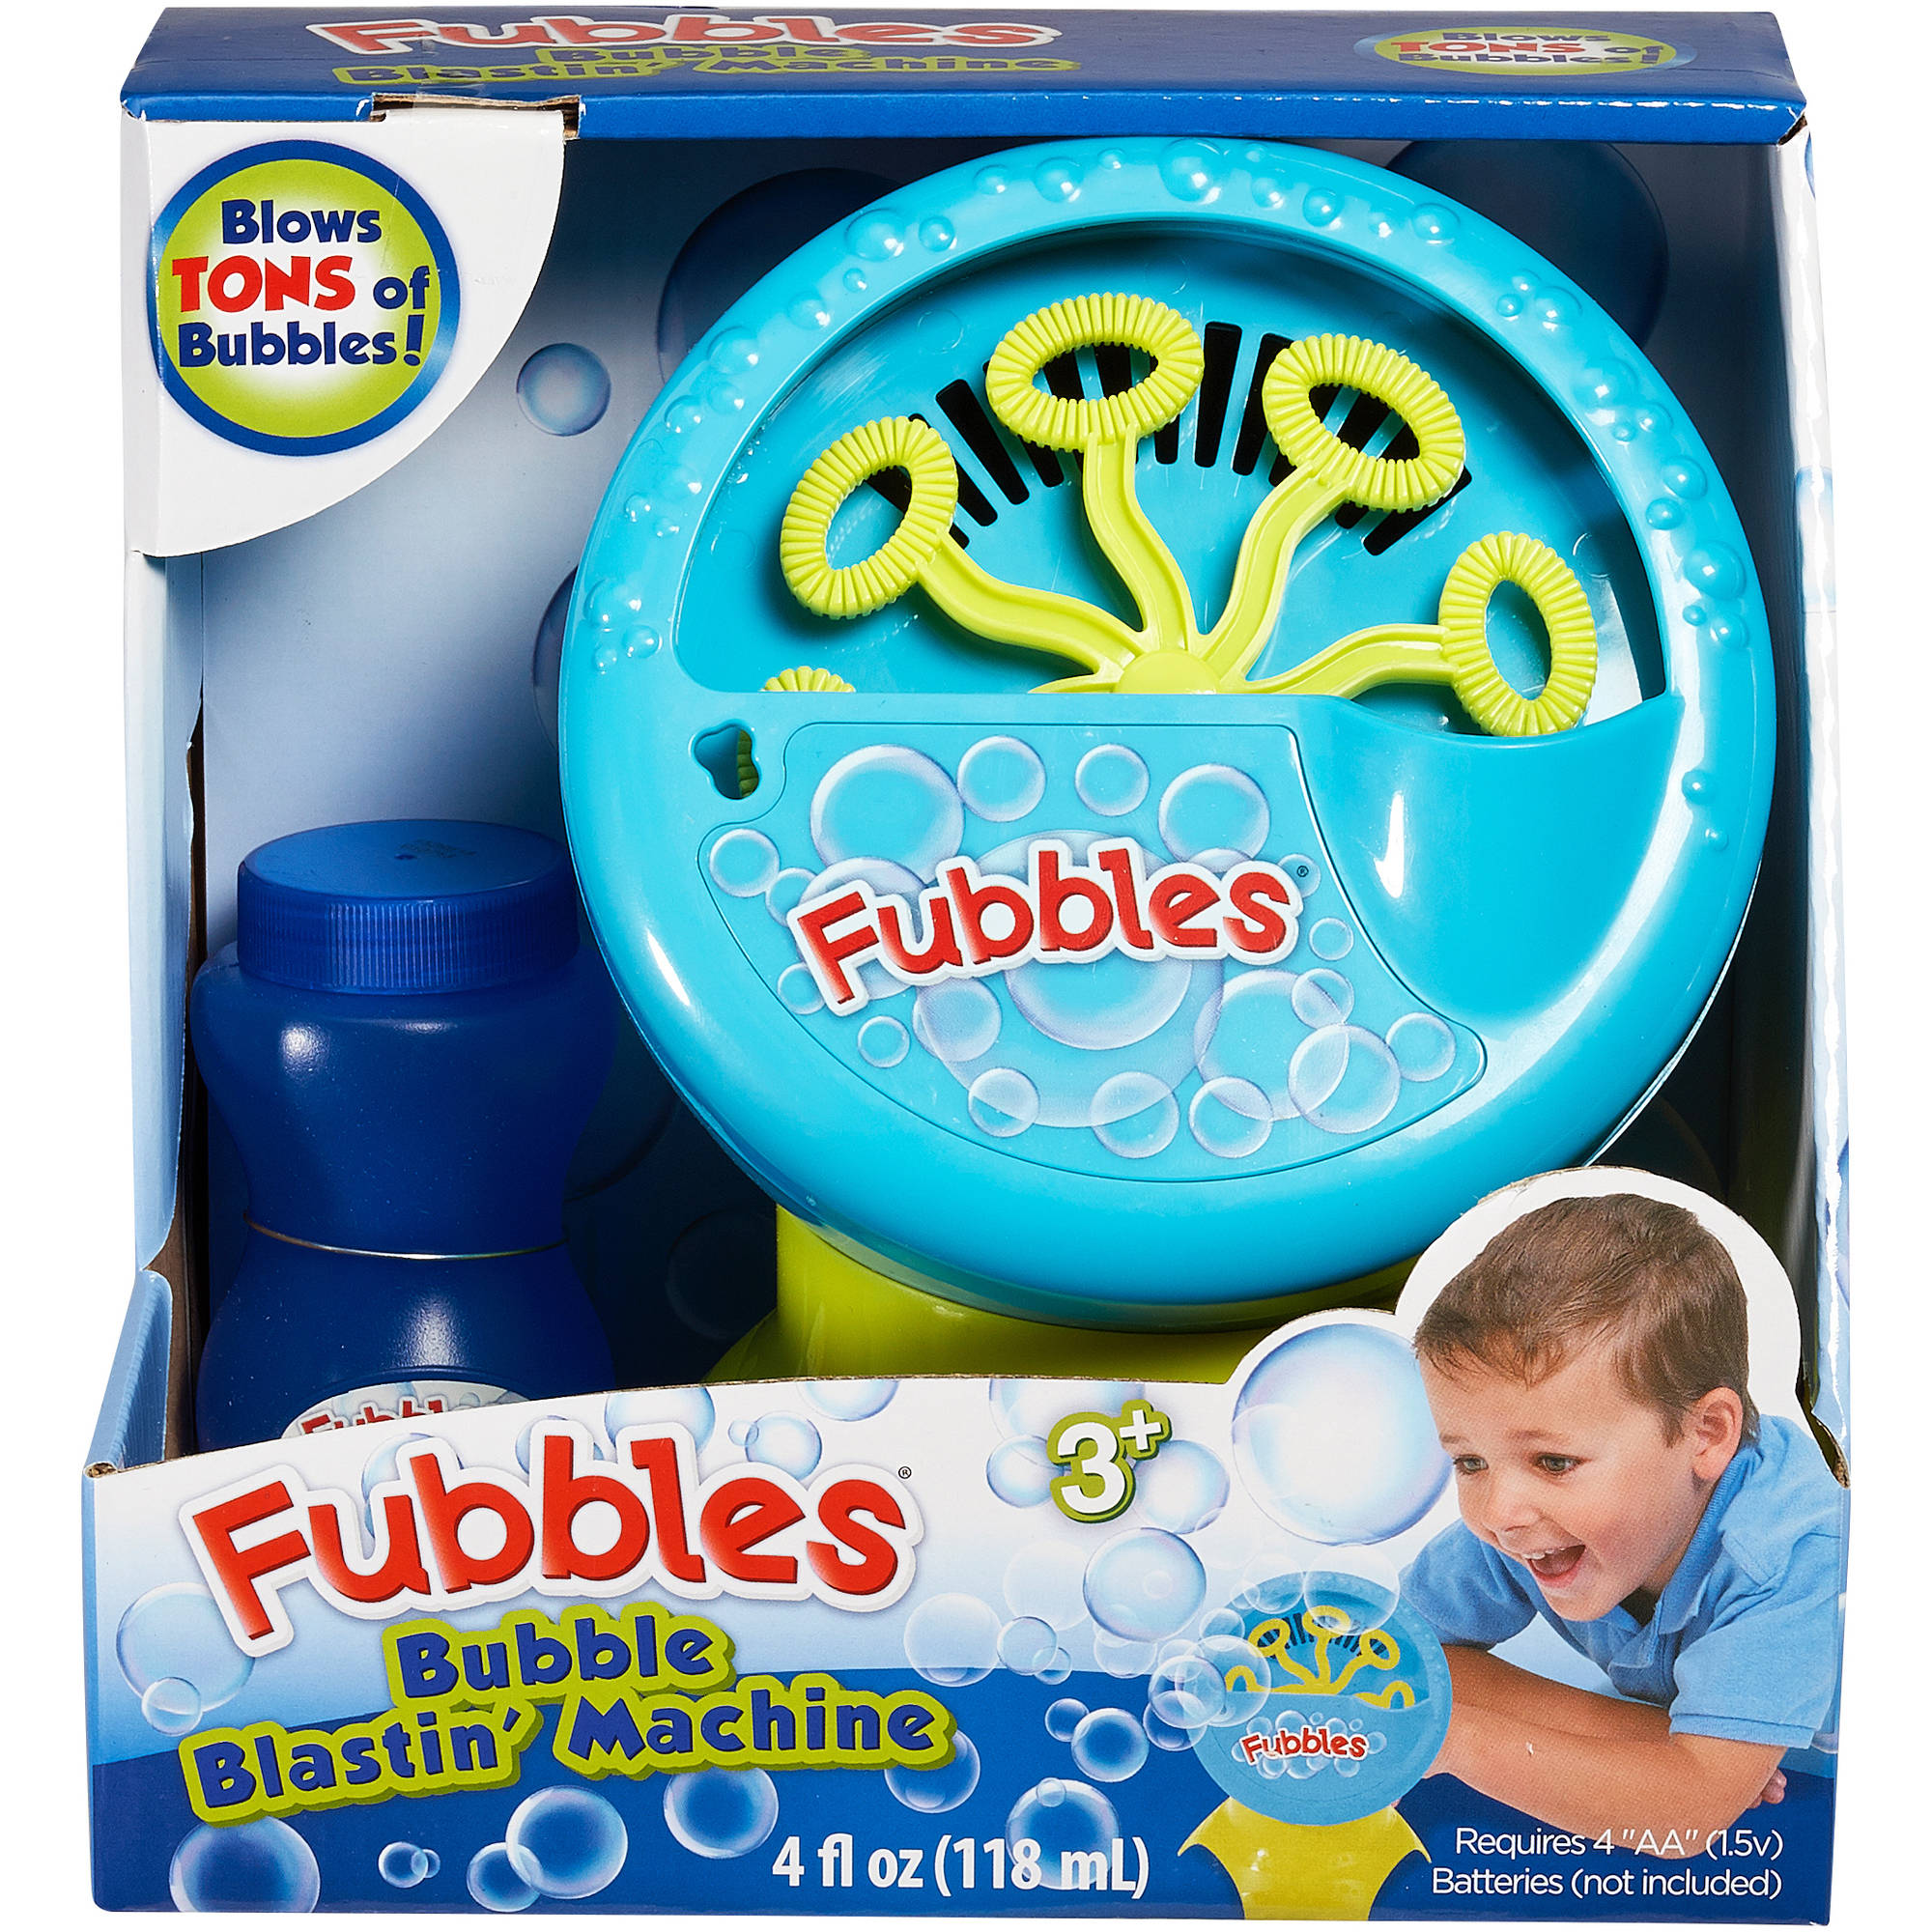 Little Kids Fubbles Bubble Blastin' Machine, Blue